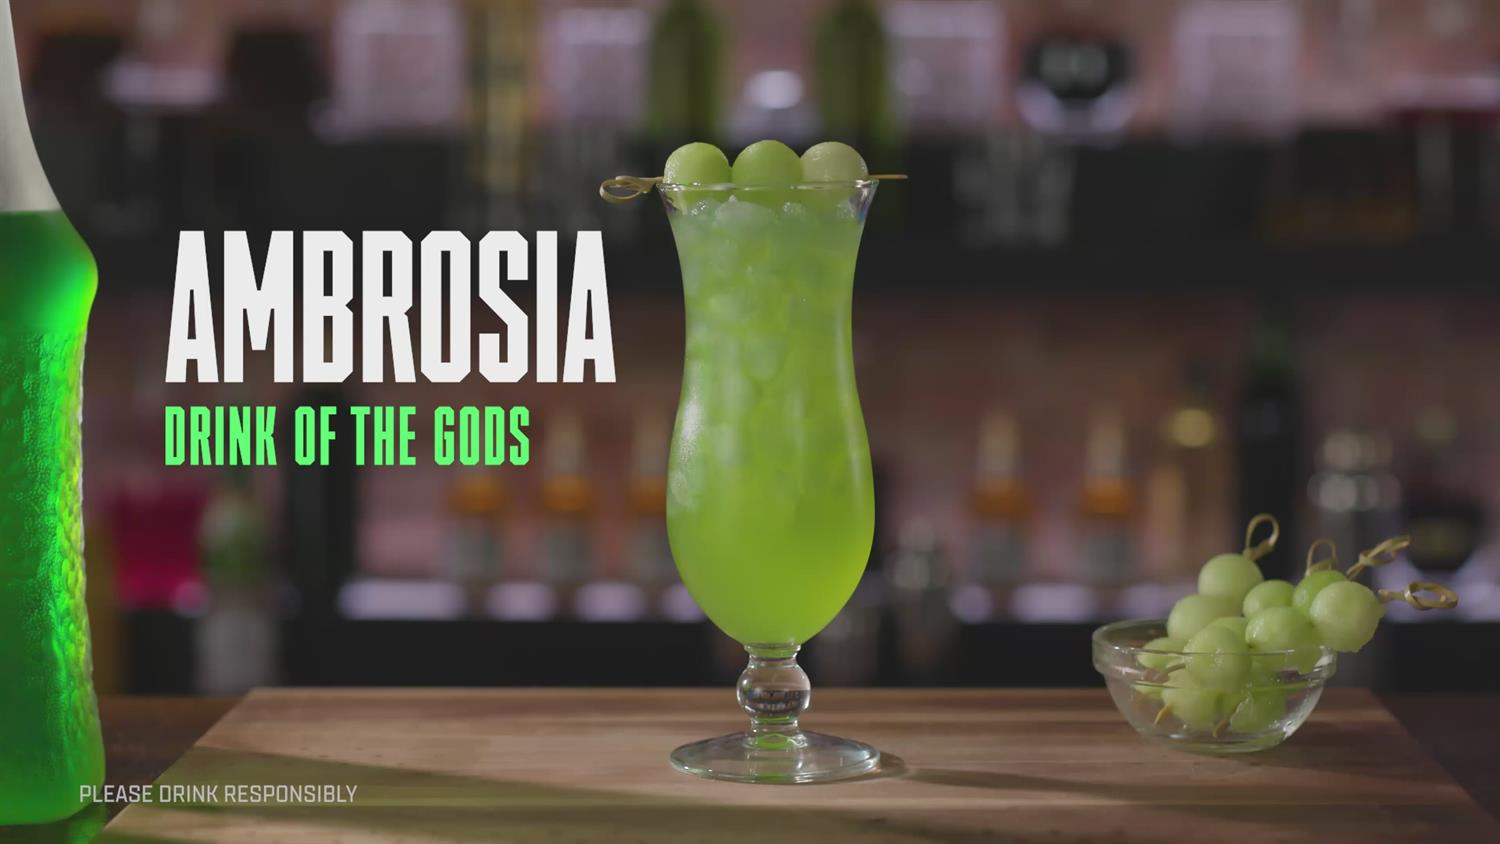 How To Make Ambrosia (Drink of the Gods)